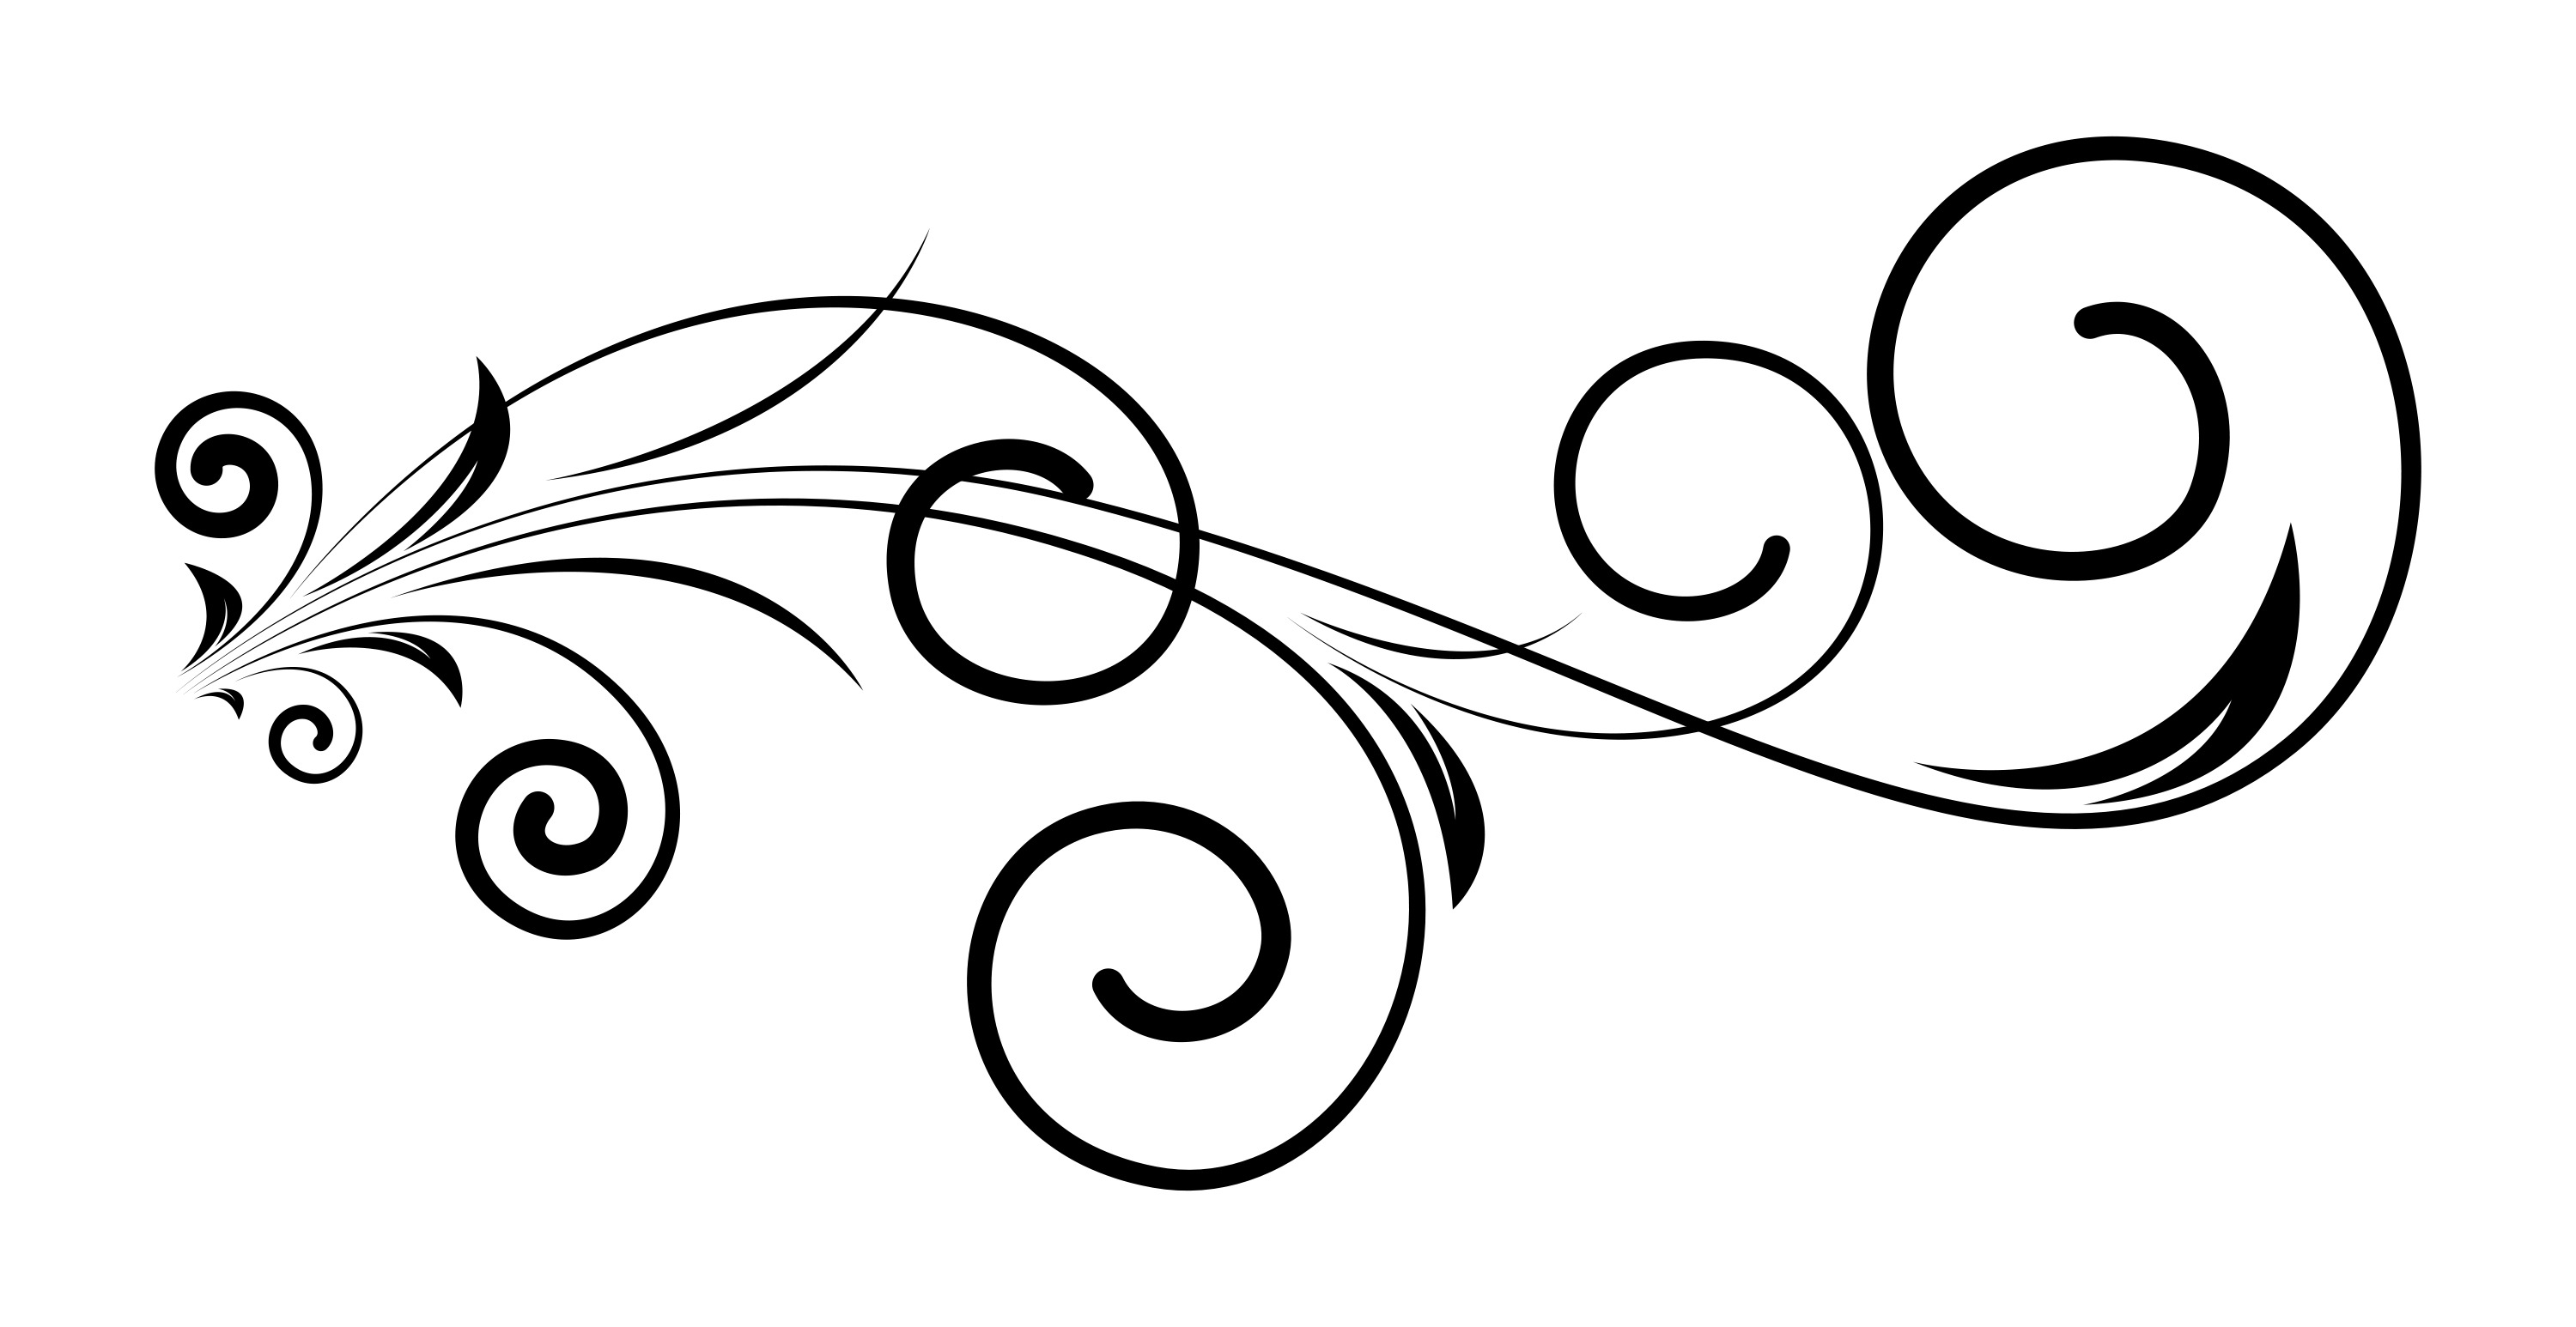 Shell Clip Art Free Black And White also Post fancy Swirl Design 215946 furthermore Swirls Clipart Free additionally Swirl Border Clipart furthermore When White People Dont Know Theyre Being White. on spiral christmas tree